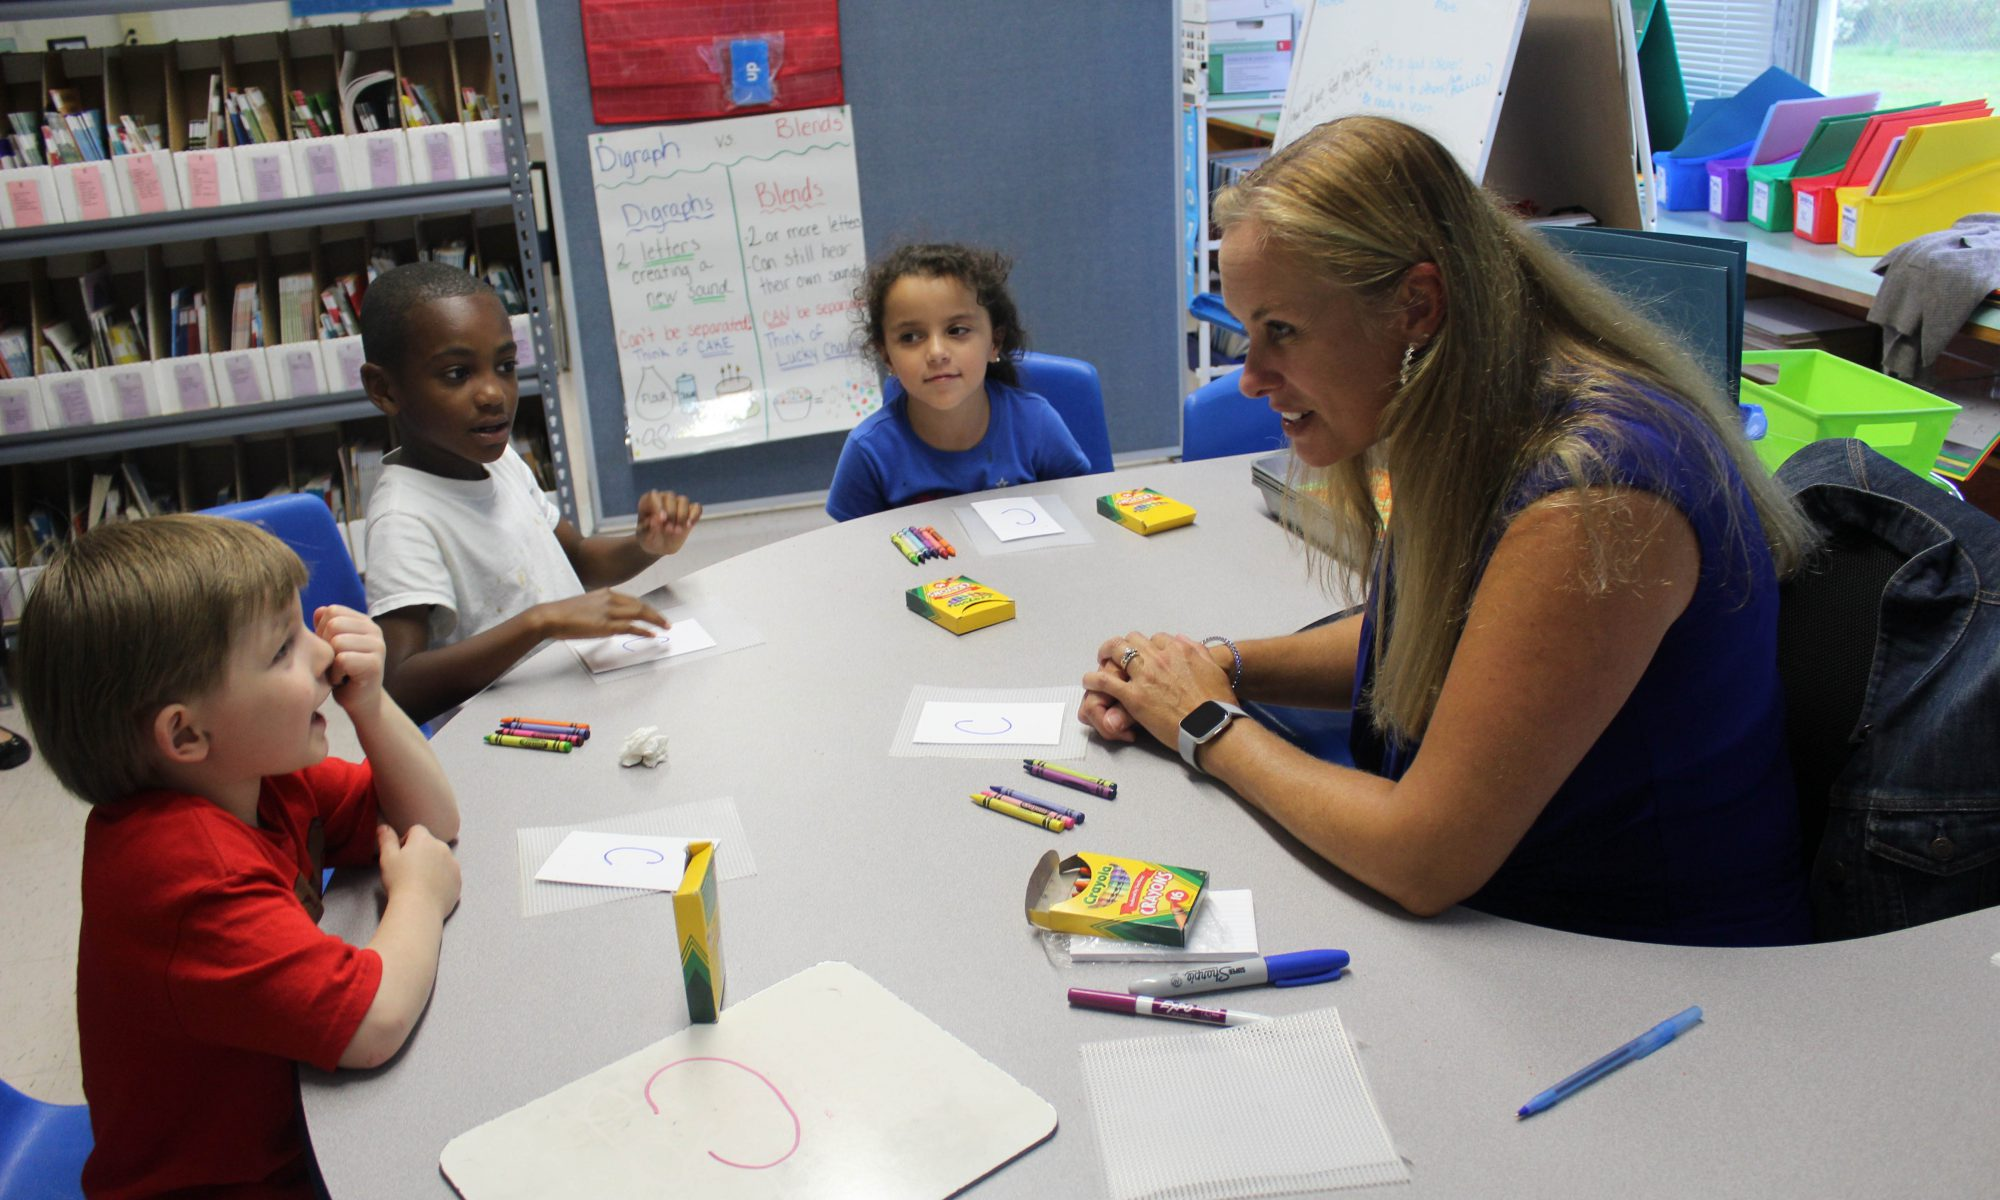 Three small students sit around a circular table. A teacher with long blond hair sits in the center. There are crayons and paper on the table.